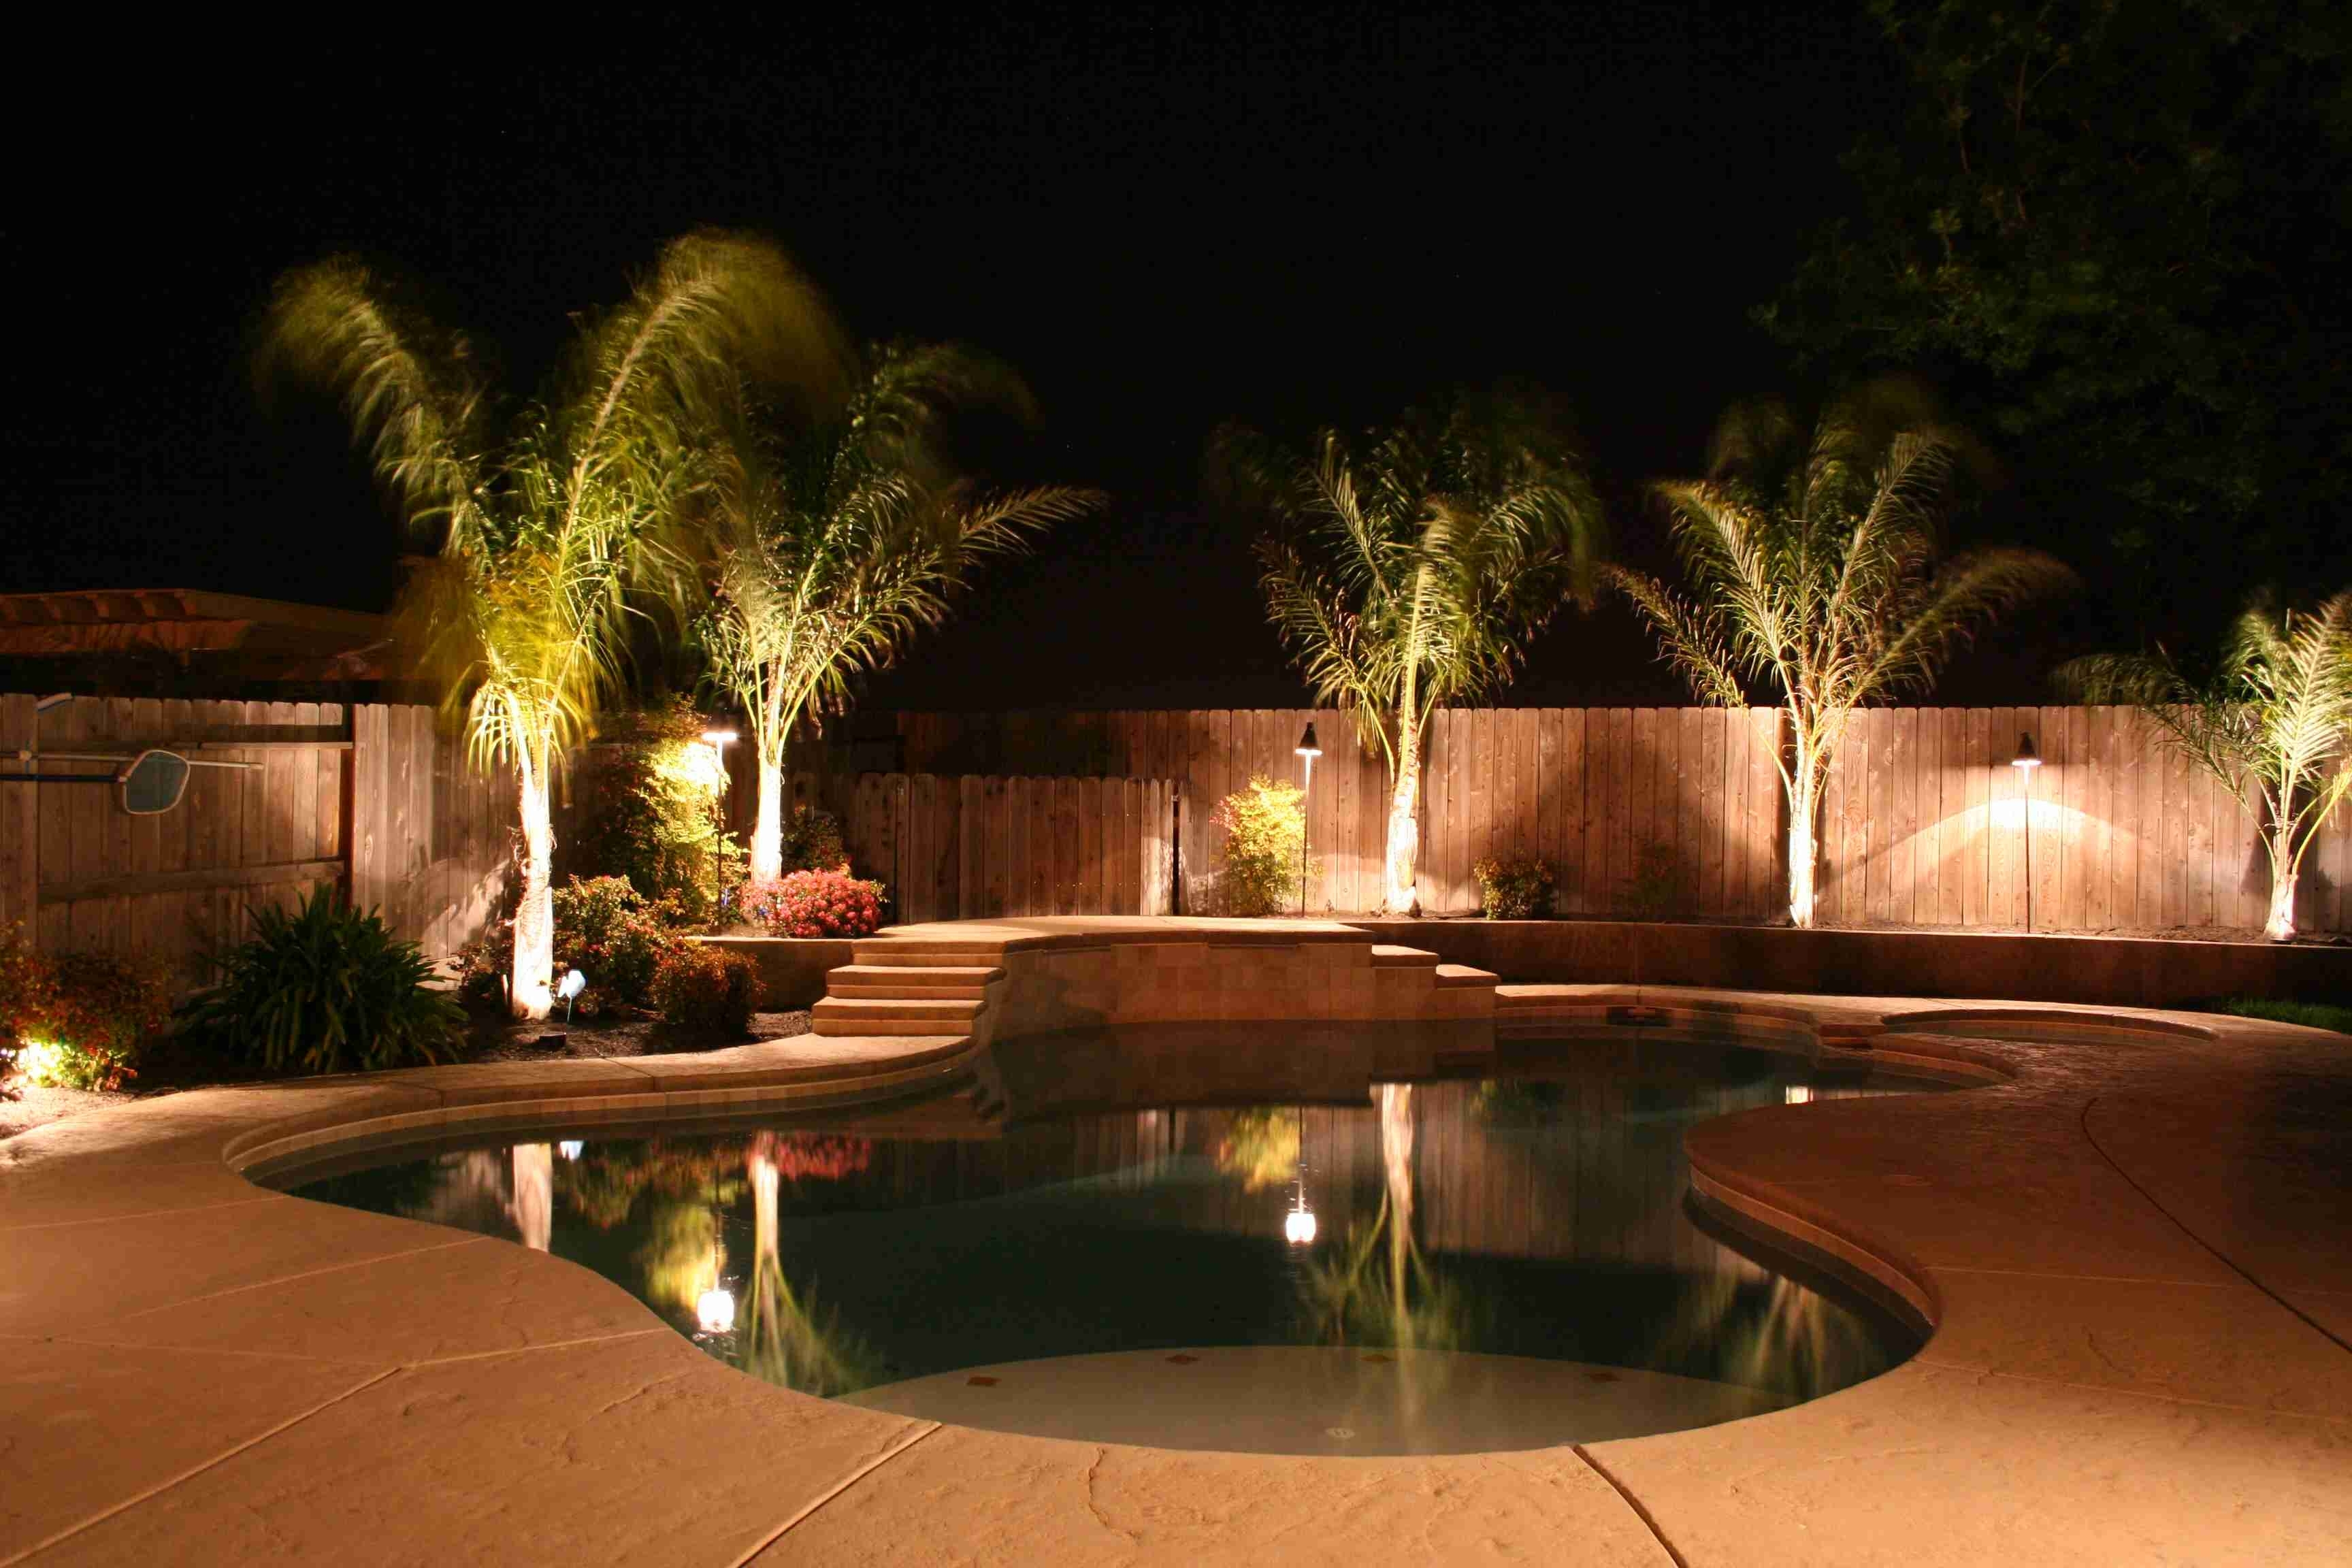 Lighting Definition Photography Task Led Pole Light Heads Outdoor Regarding Outdoor Lanterns For Poolside (View 10 of 20)